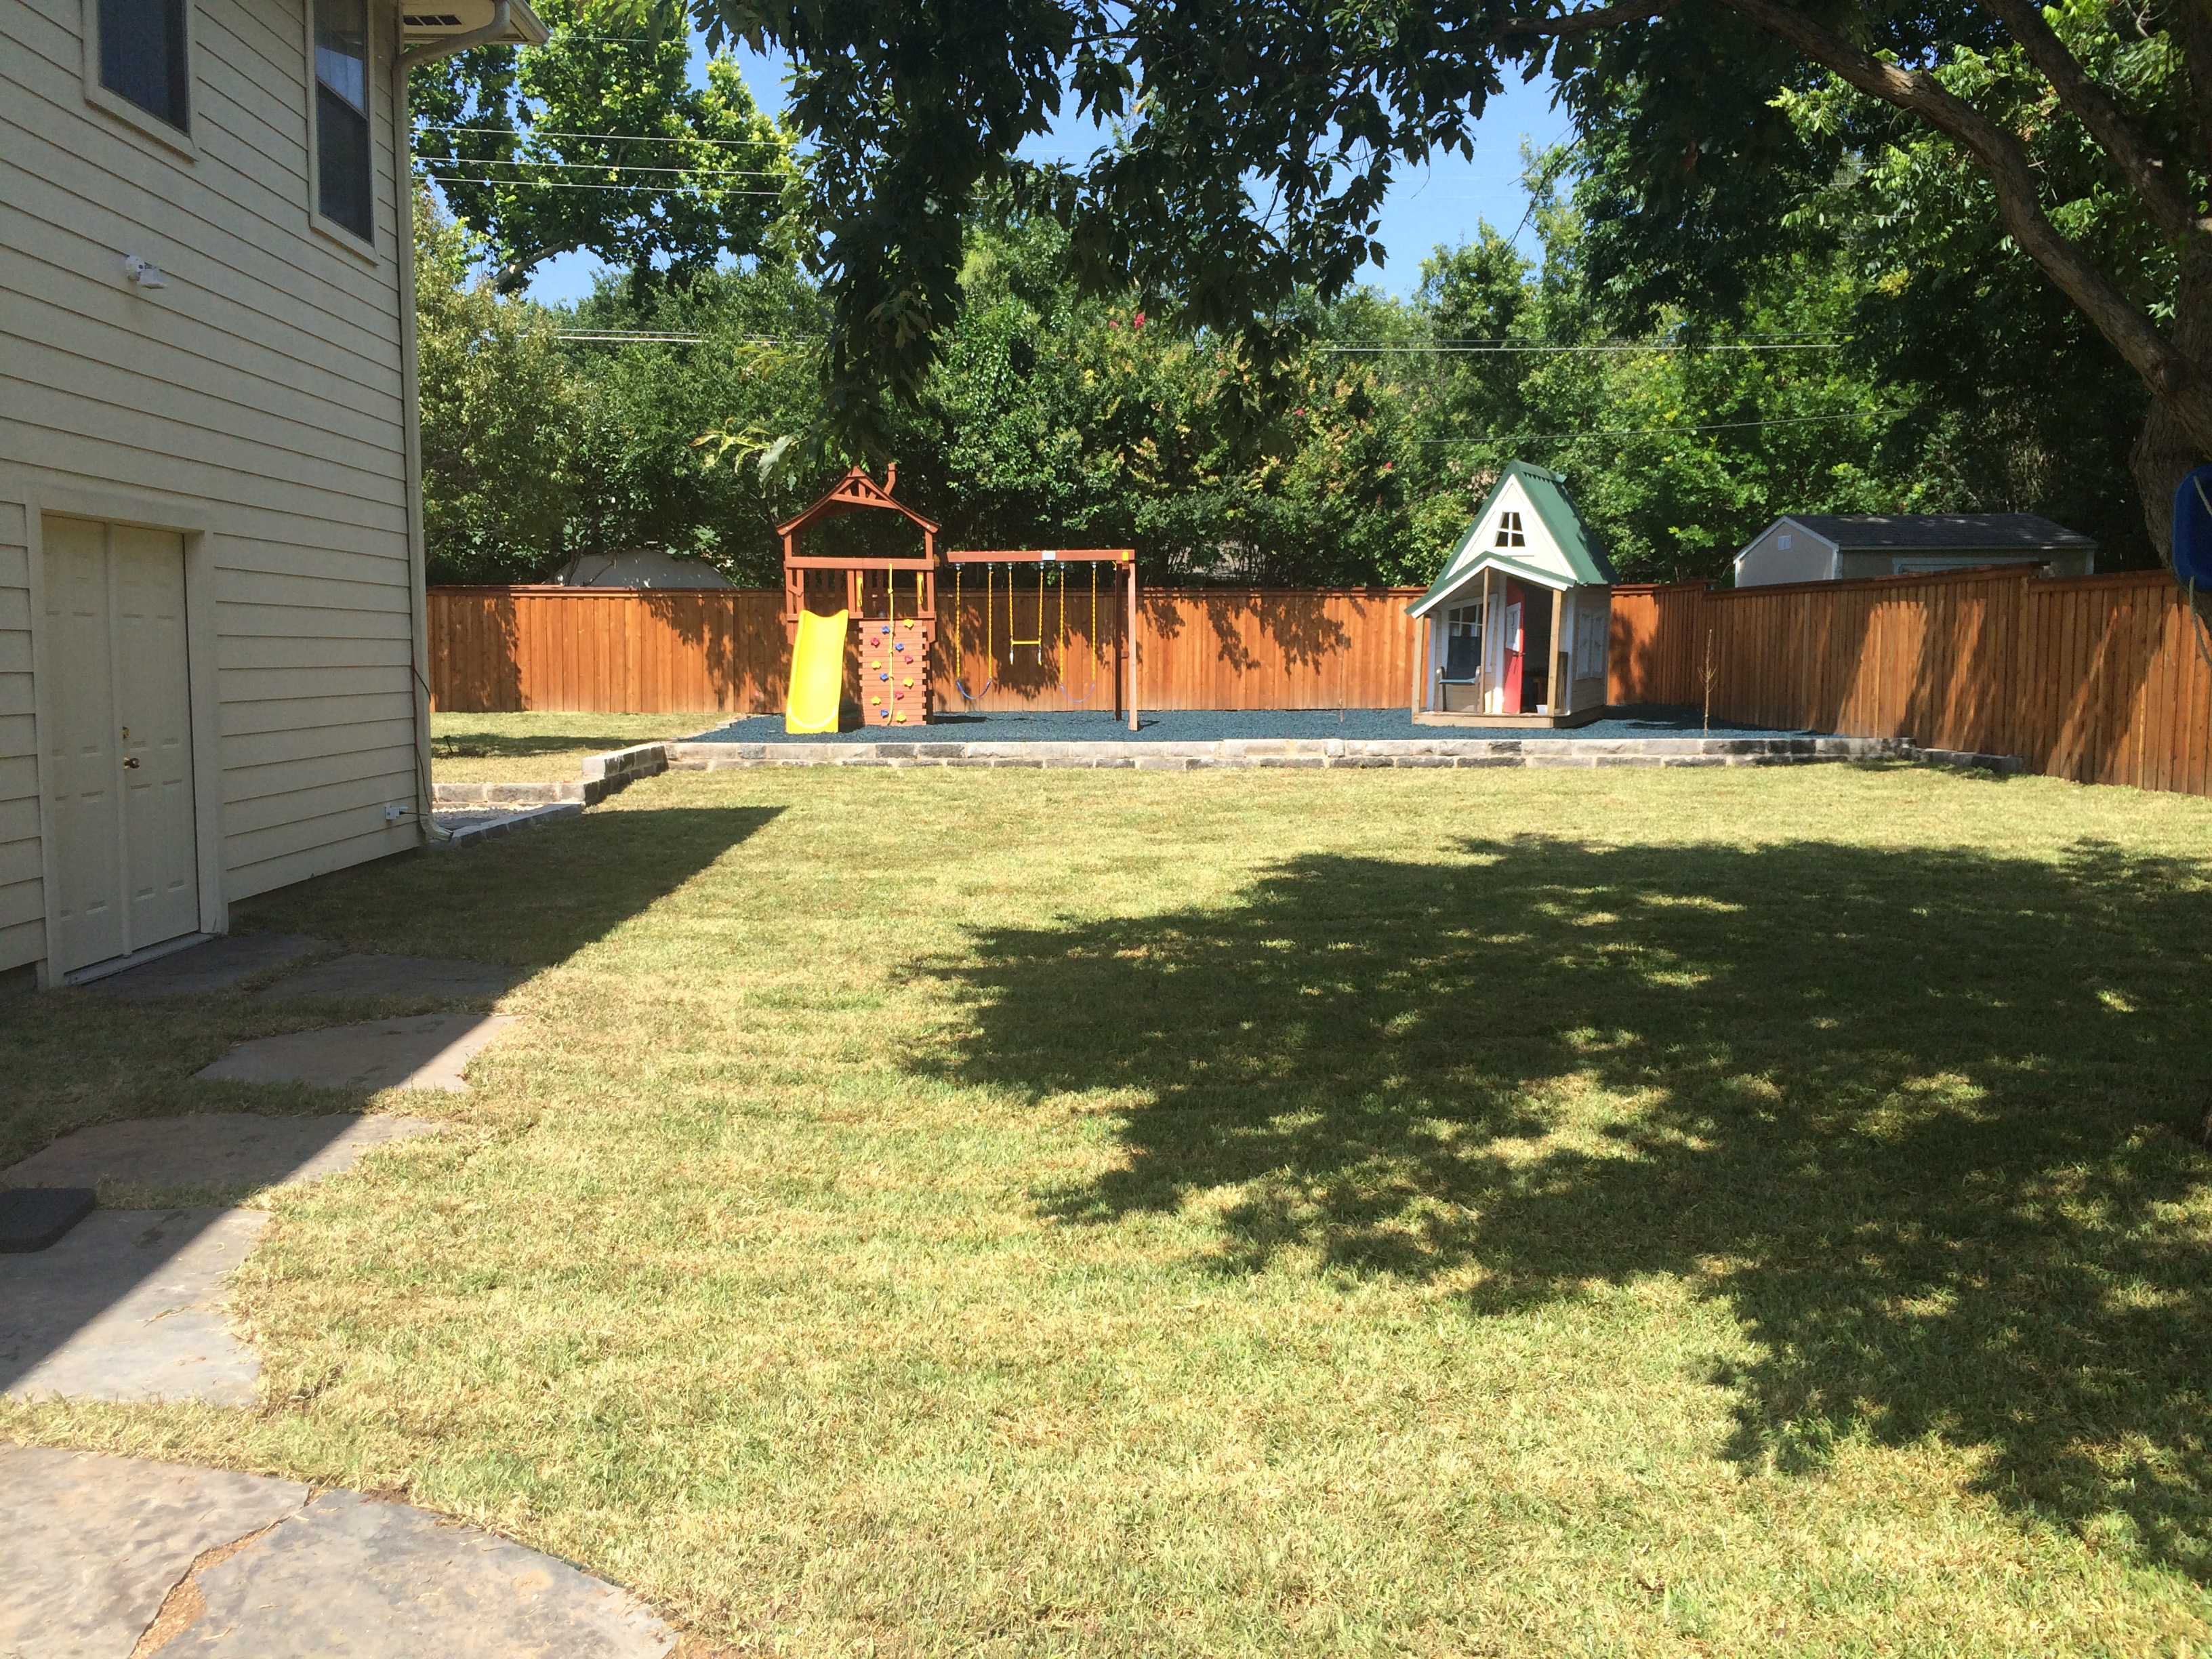 Backyard makeover waco lawns ltd landscape designers for Backyard makeover with pool